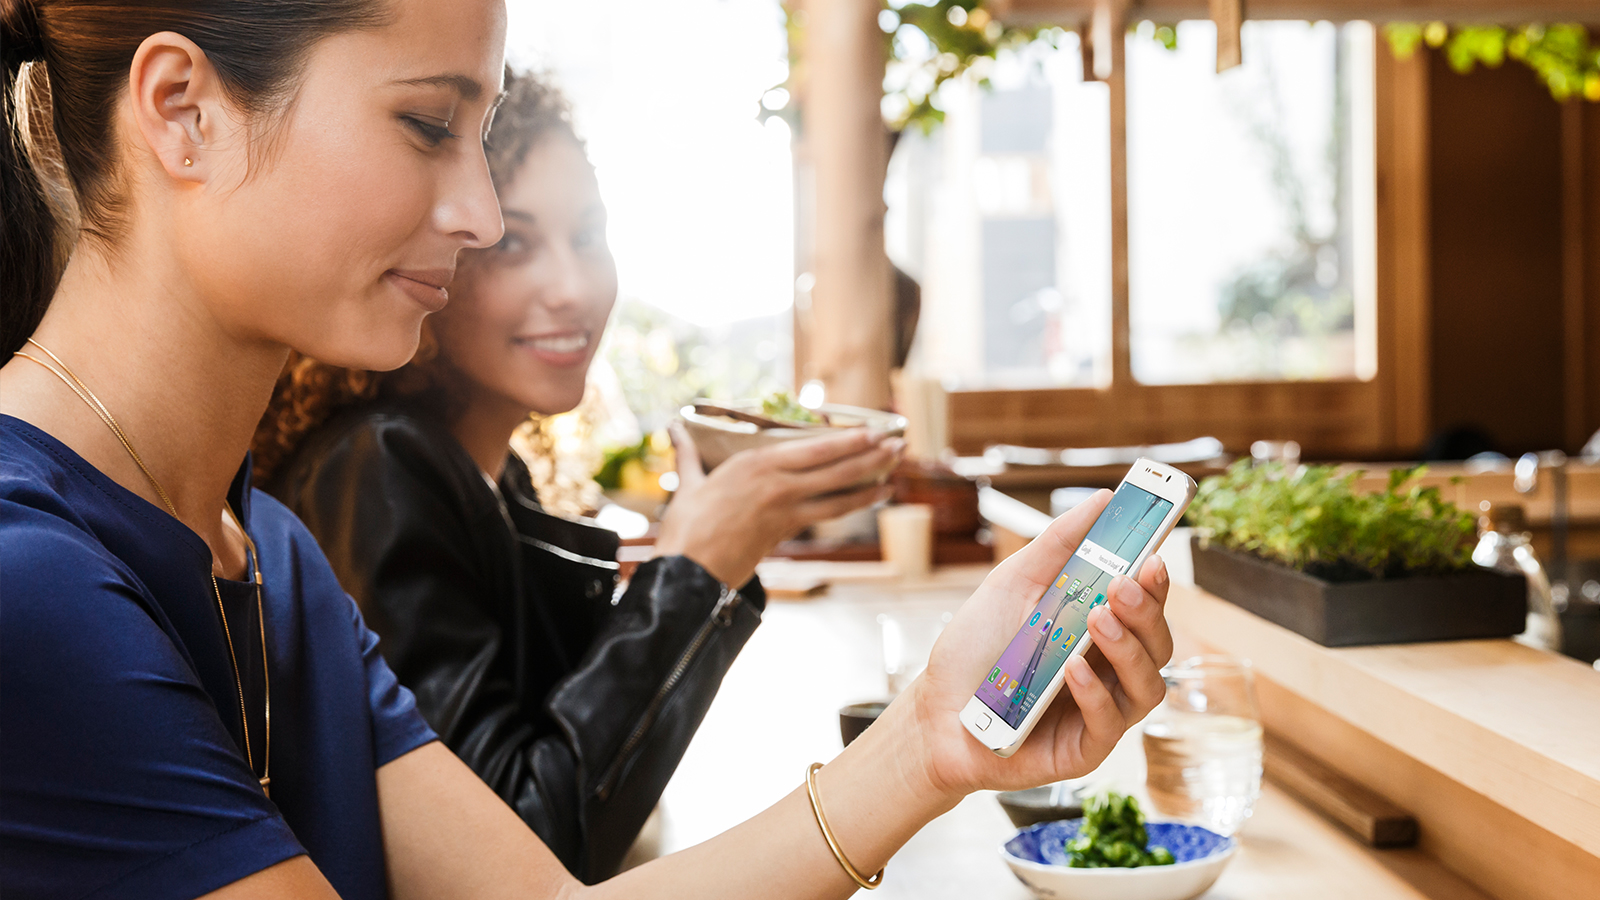 Women at table looking at phone